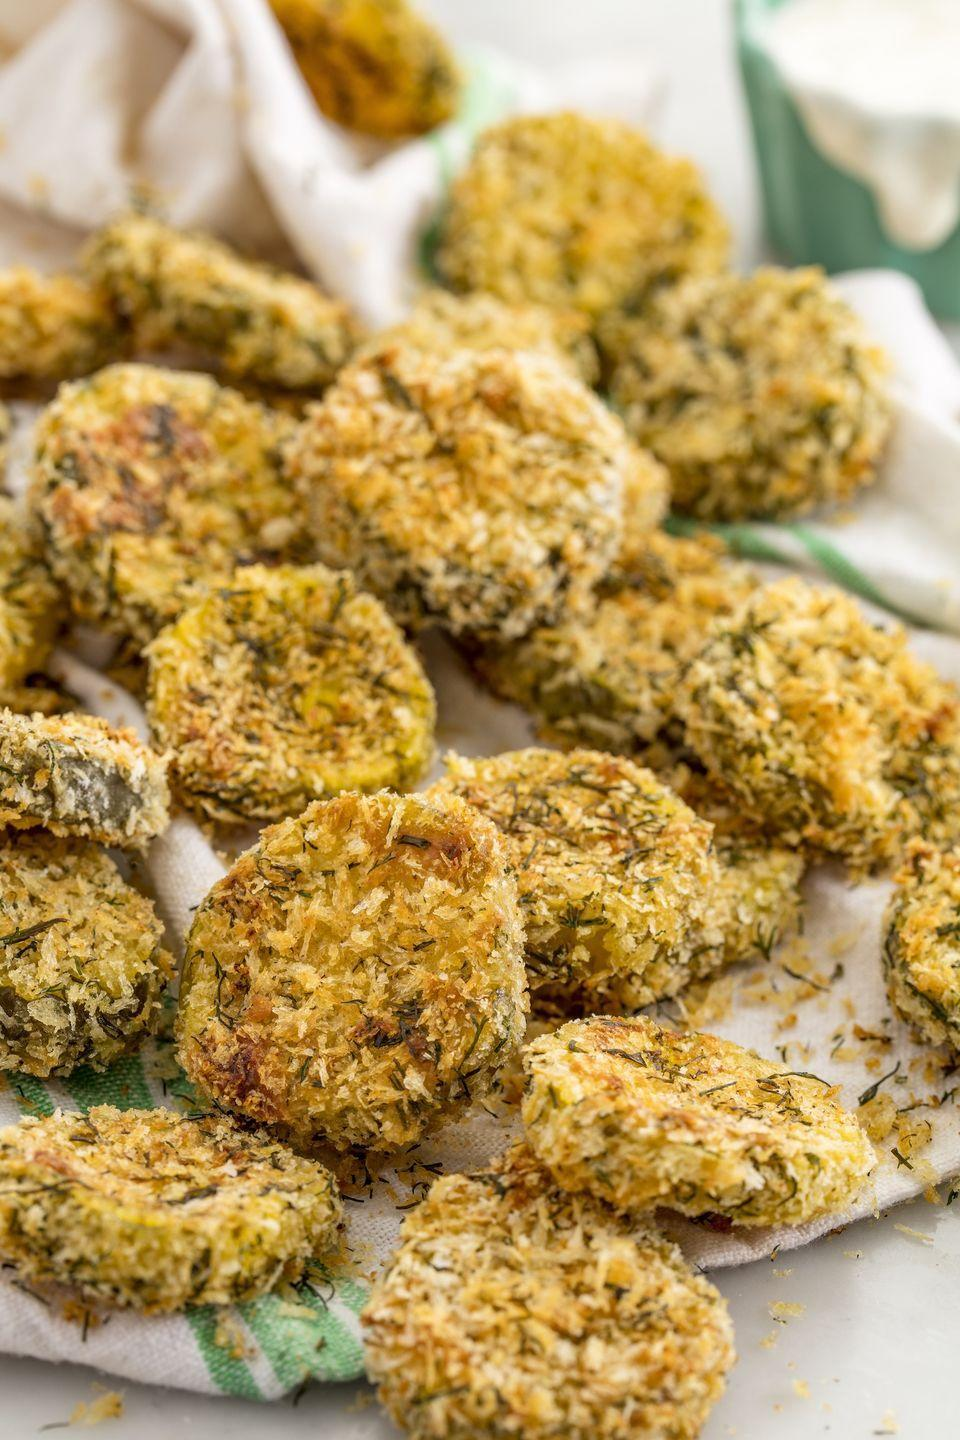 "<p>The crunch on these babies is unreal.</p><p>Get the recipe from <a href=""https://patty-delish.hearstapps.com/cooking/recipe-ideas/recipes/a53332/oven-fried-pickles-recipe/"" rel=""nofollow noopener"" target=""_blank"" data-ylk=""slk:Delish"" class=""link rapid-noclick-resp"">Delish</a>.</p>"